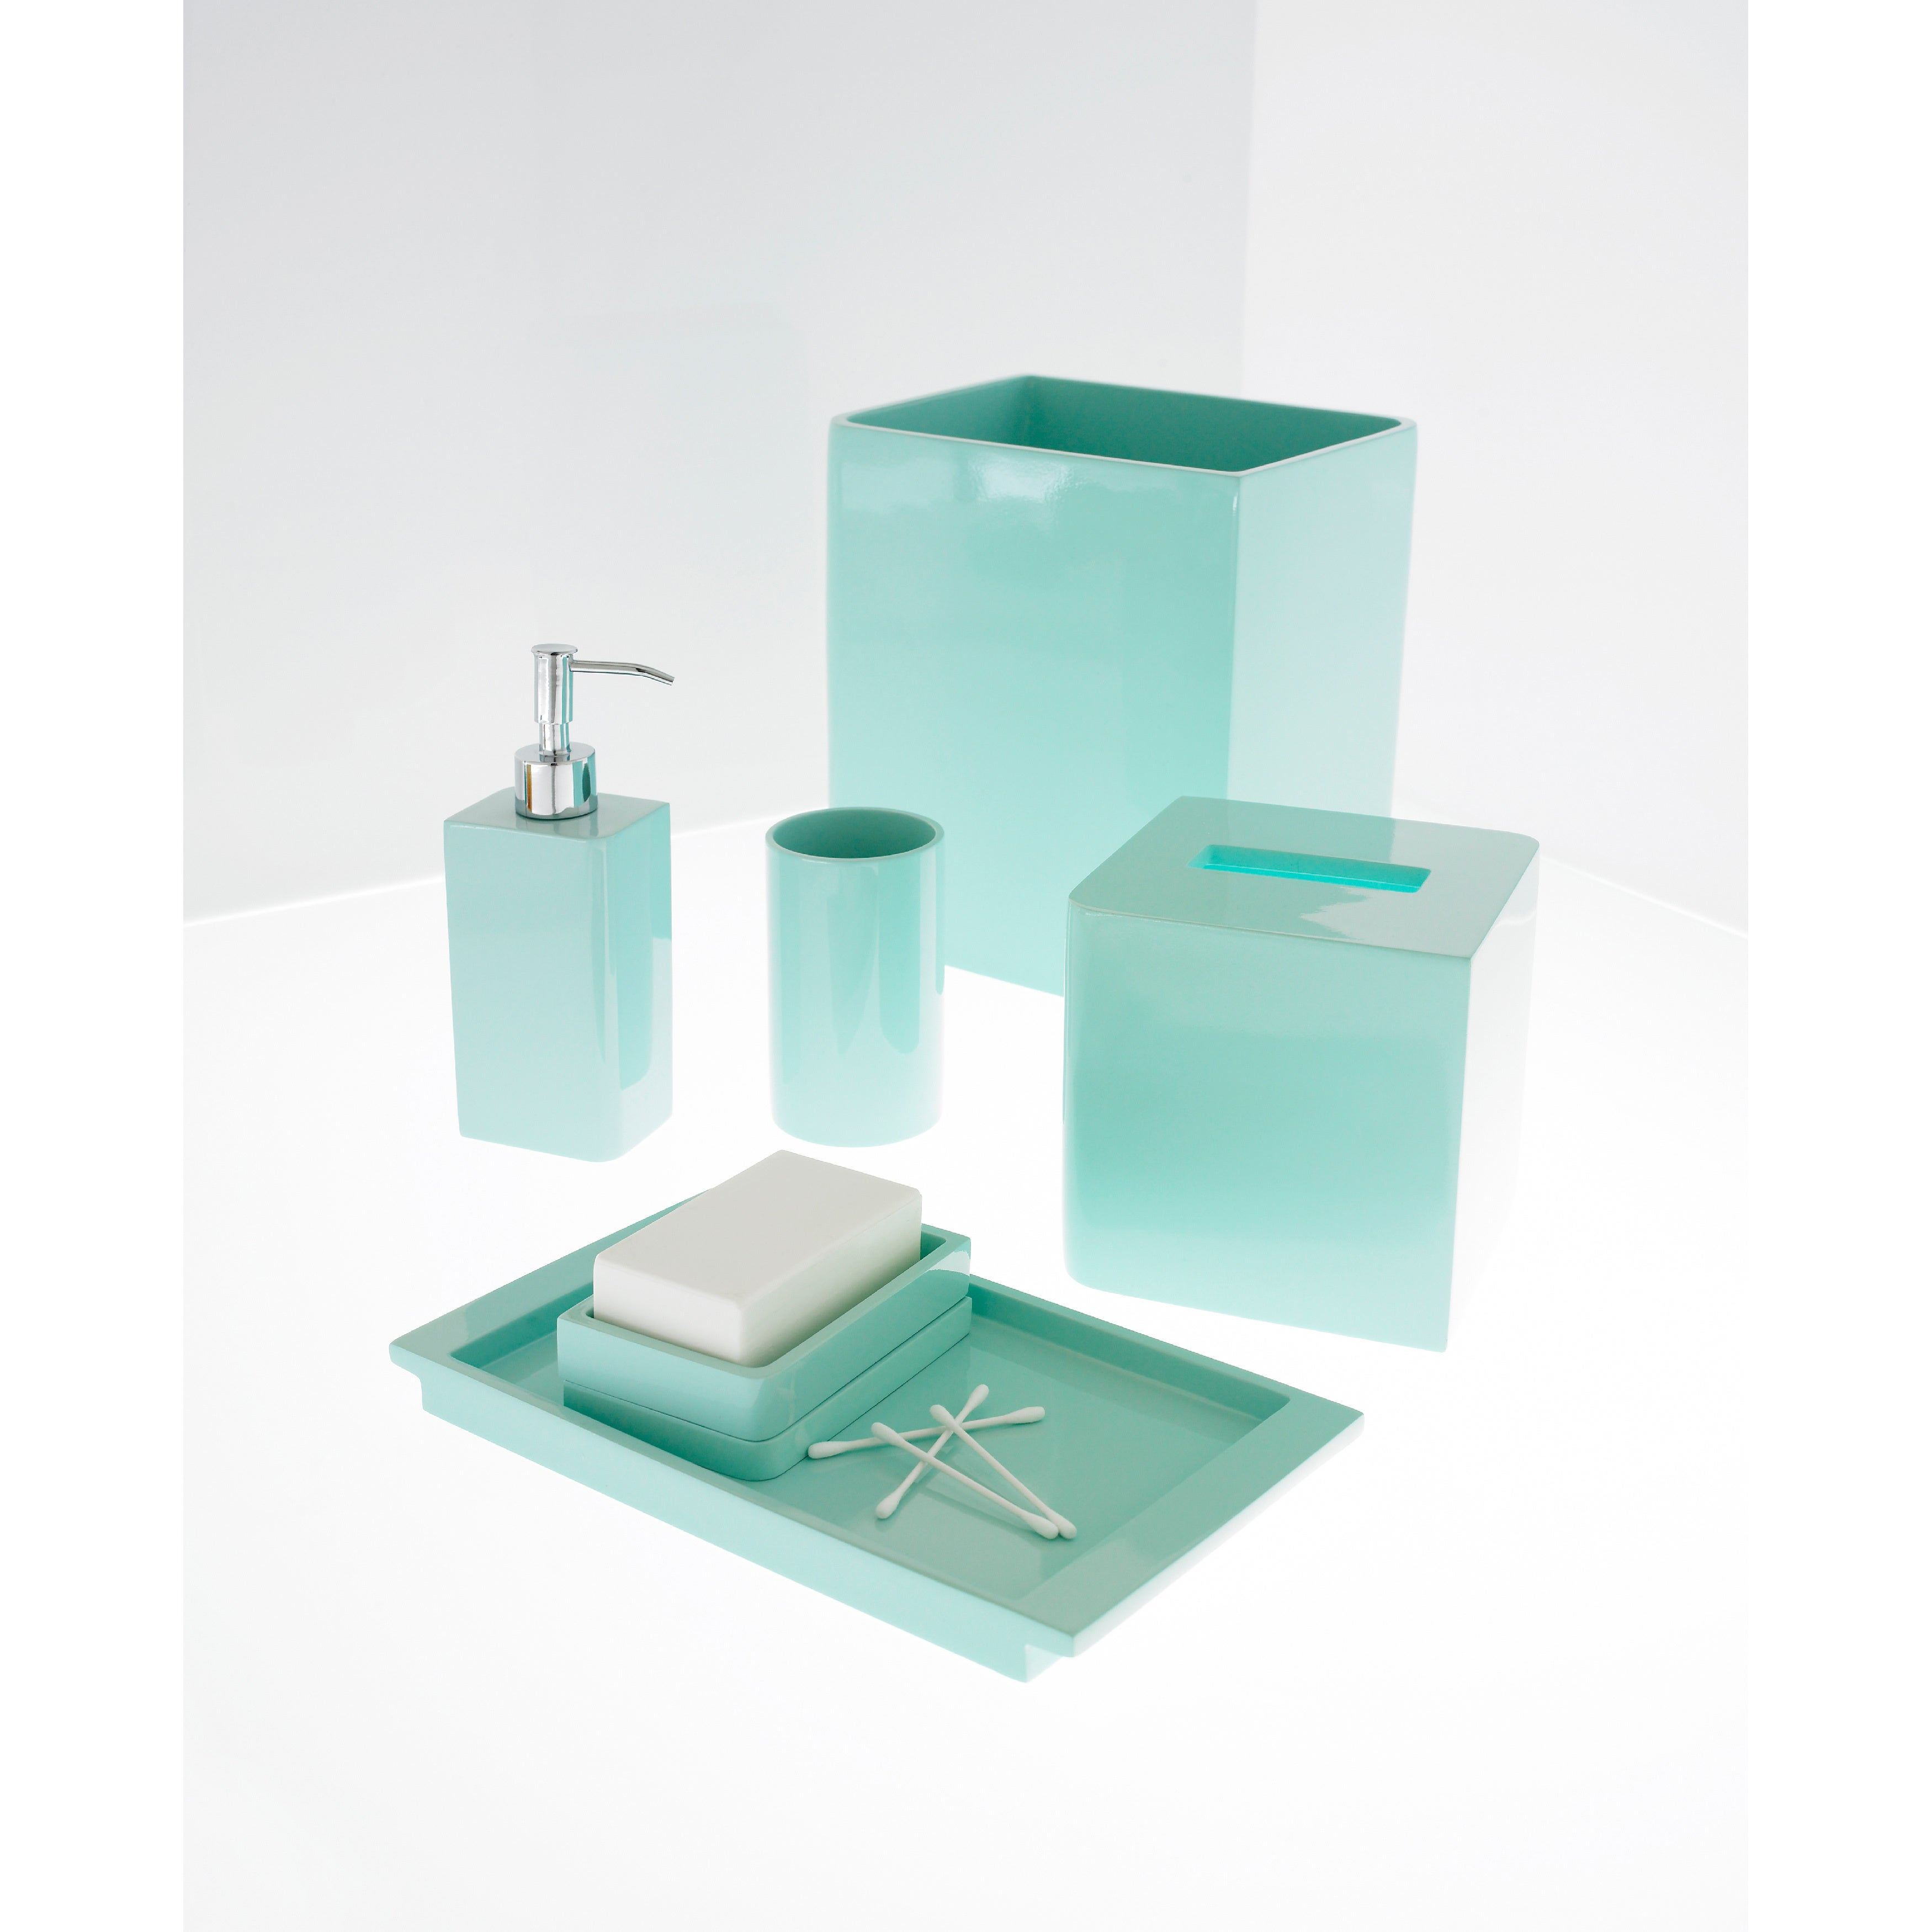 Solid lacquer light blue bath accessory collection for Pale blue bathroom accessories